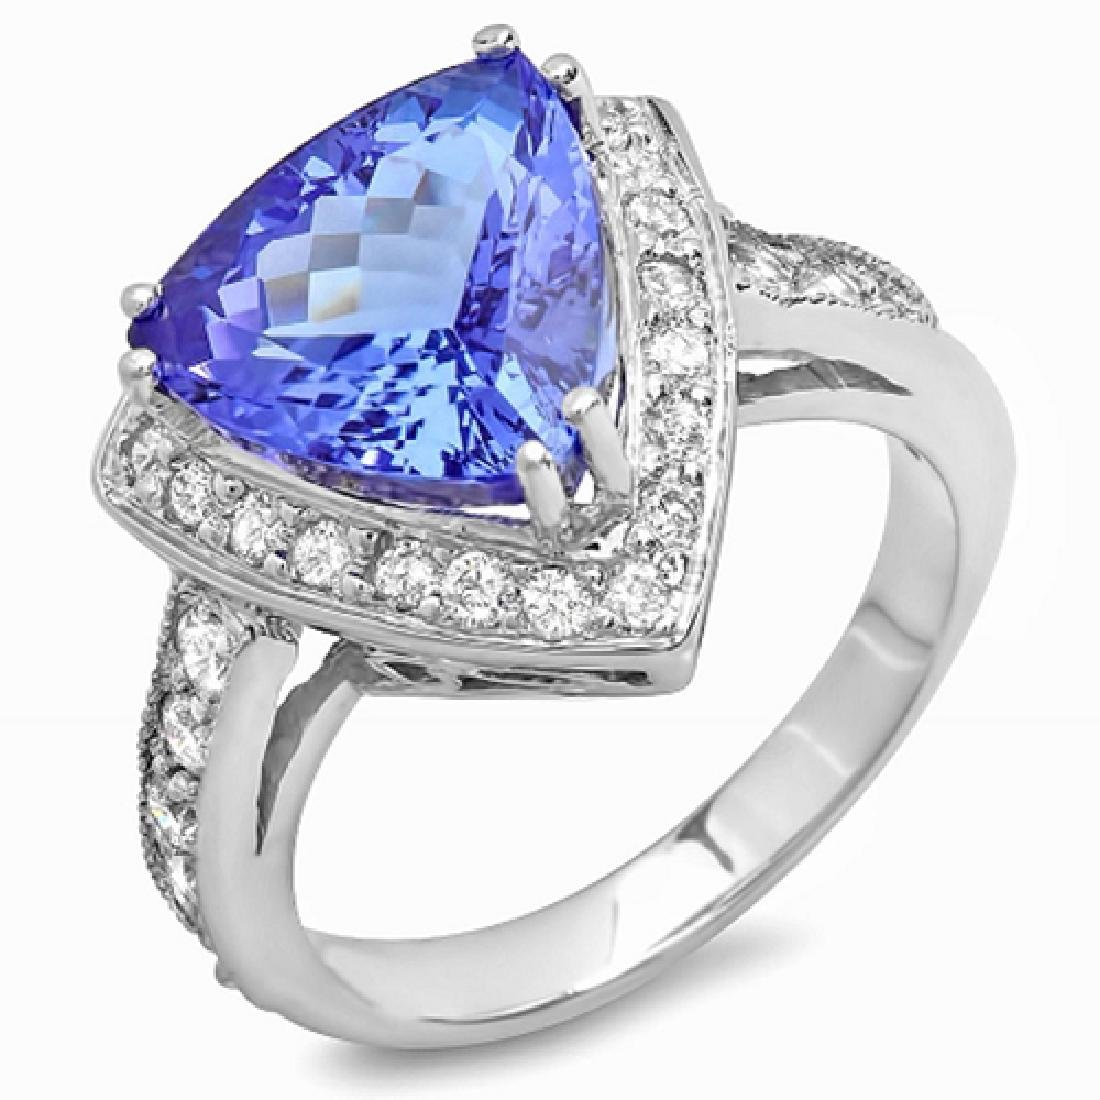 5.84 Carat Natural Tanzanite 18K Solid White Gold